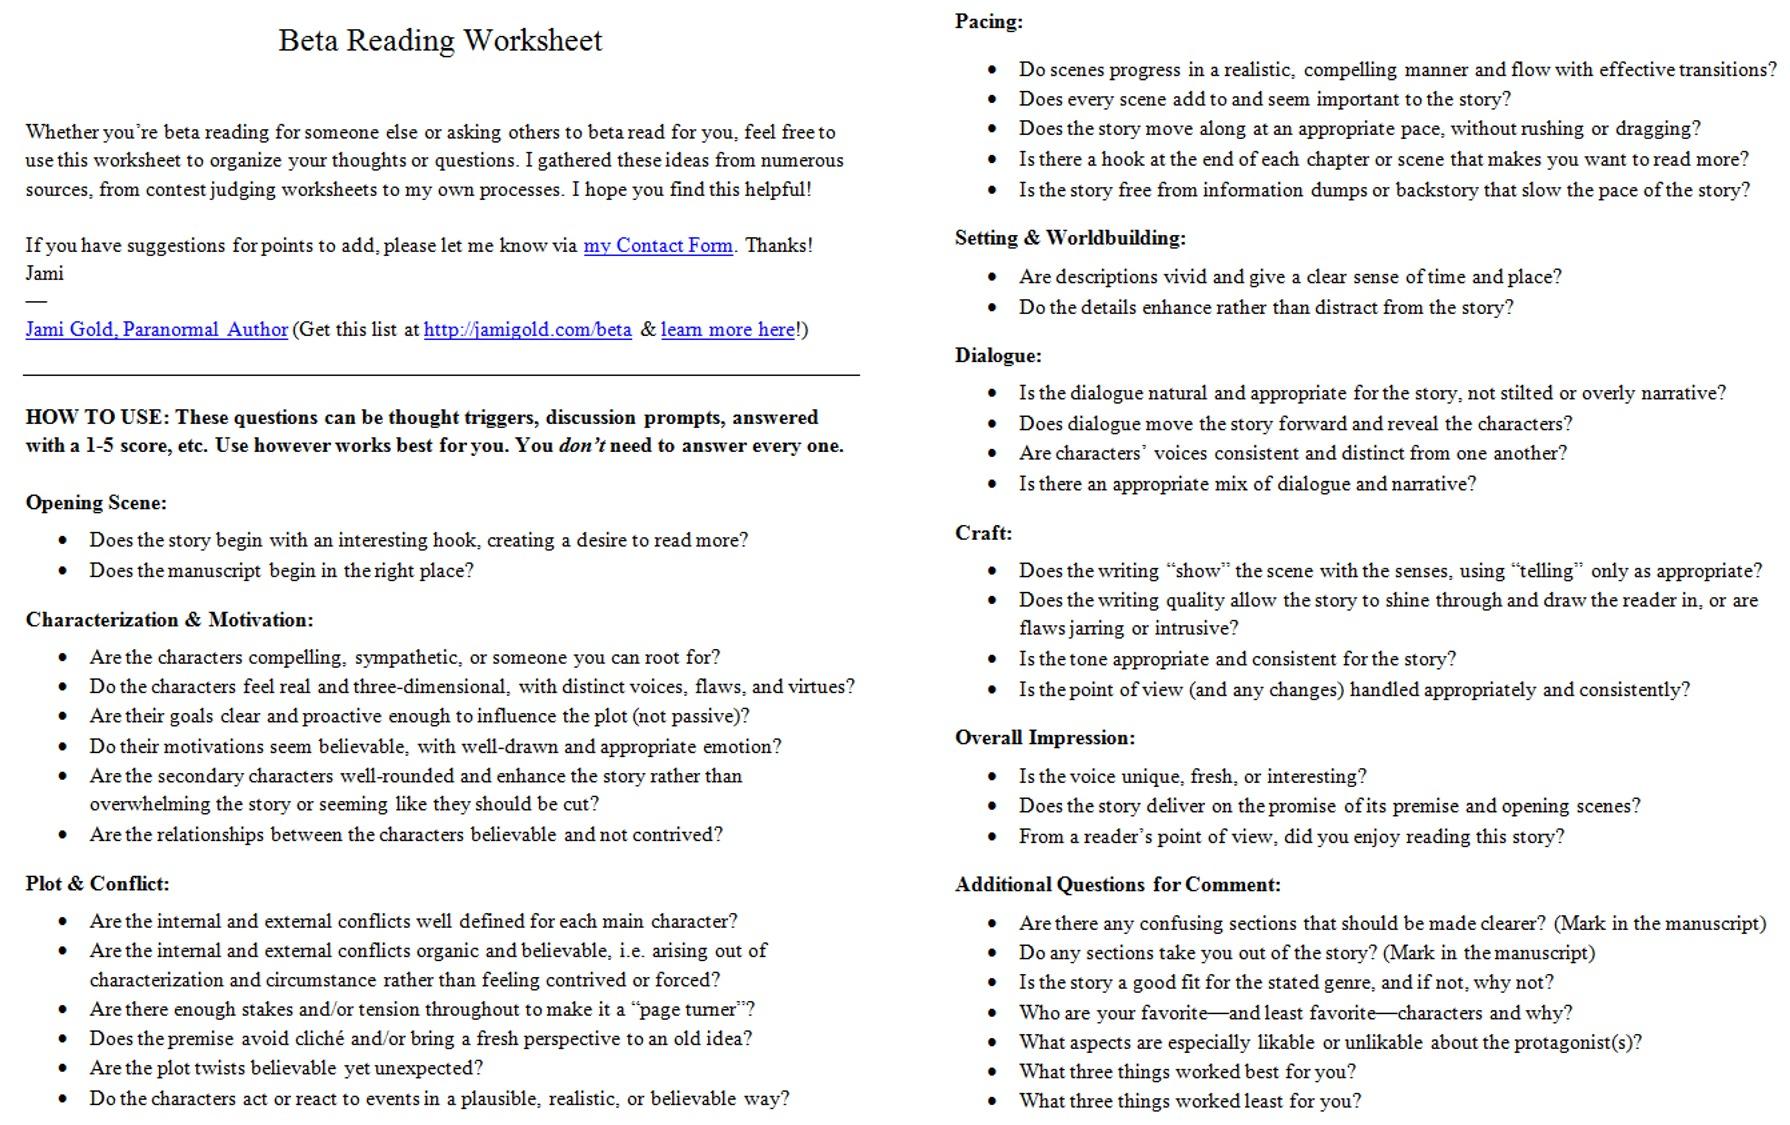 Proatmealus  Fascinating Worksheets For Writers  Jami Gold Paranormal Author With Luxury Screen Shot Of The Twopage Beta Reading Worksheet With Comely  Digit Subtraction With Regrouping Worksheets Rd Grade Also Algebra  Worksheets Answers In Addition Factoring Quadratic Worksheet And Set Notation Worksheet As Well As Exponent Rules Worksheets Additionally Nutrition Worksheets For High School From Jamigoldcom With Proatmealus  Luxury Worksheets For Writers  Jami Gold Paranormal Author With Comely Screen Shot Of The Twopage Beta Reading Worksheet And Fascinating  Digit Subtraction With Regrouping Worksheets Rd Grade Also Algebra  Worksheets Answers In Addition Factoring Quadratic Worksheet From Jamigoldcom